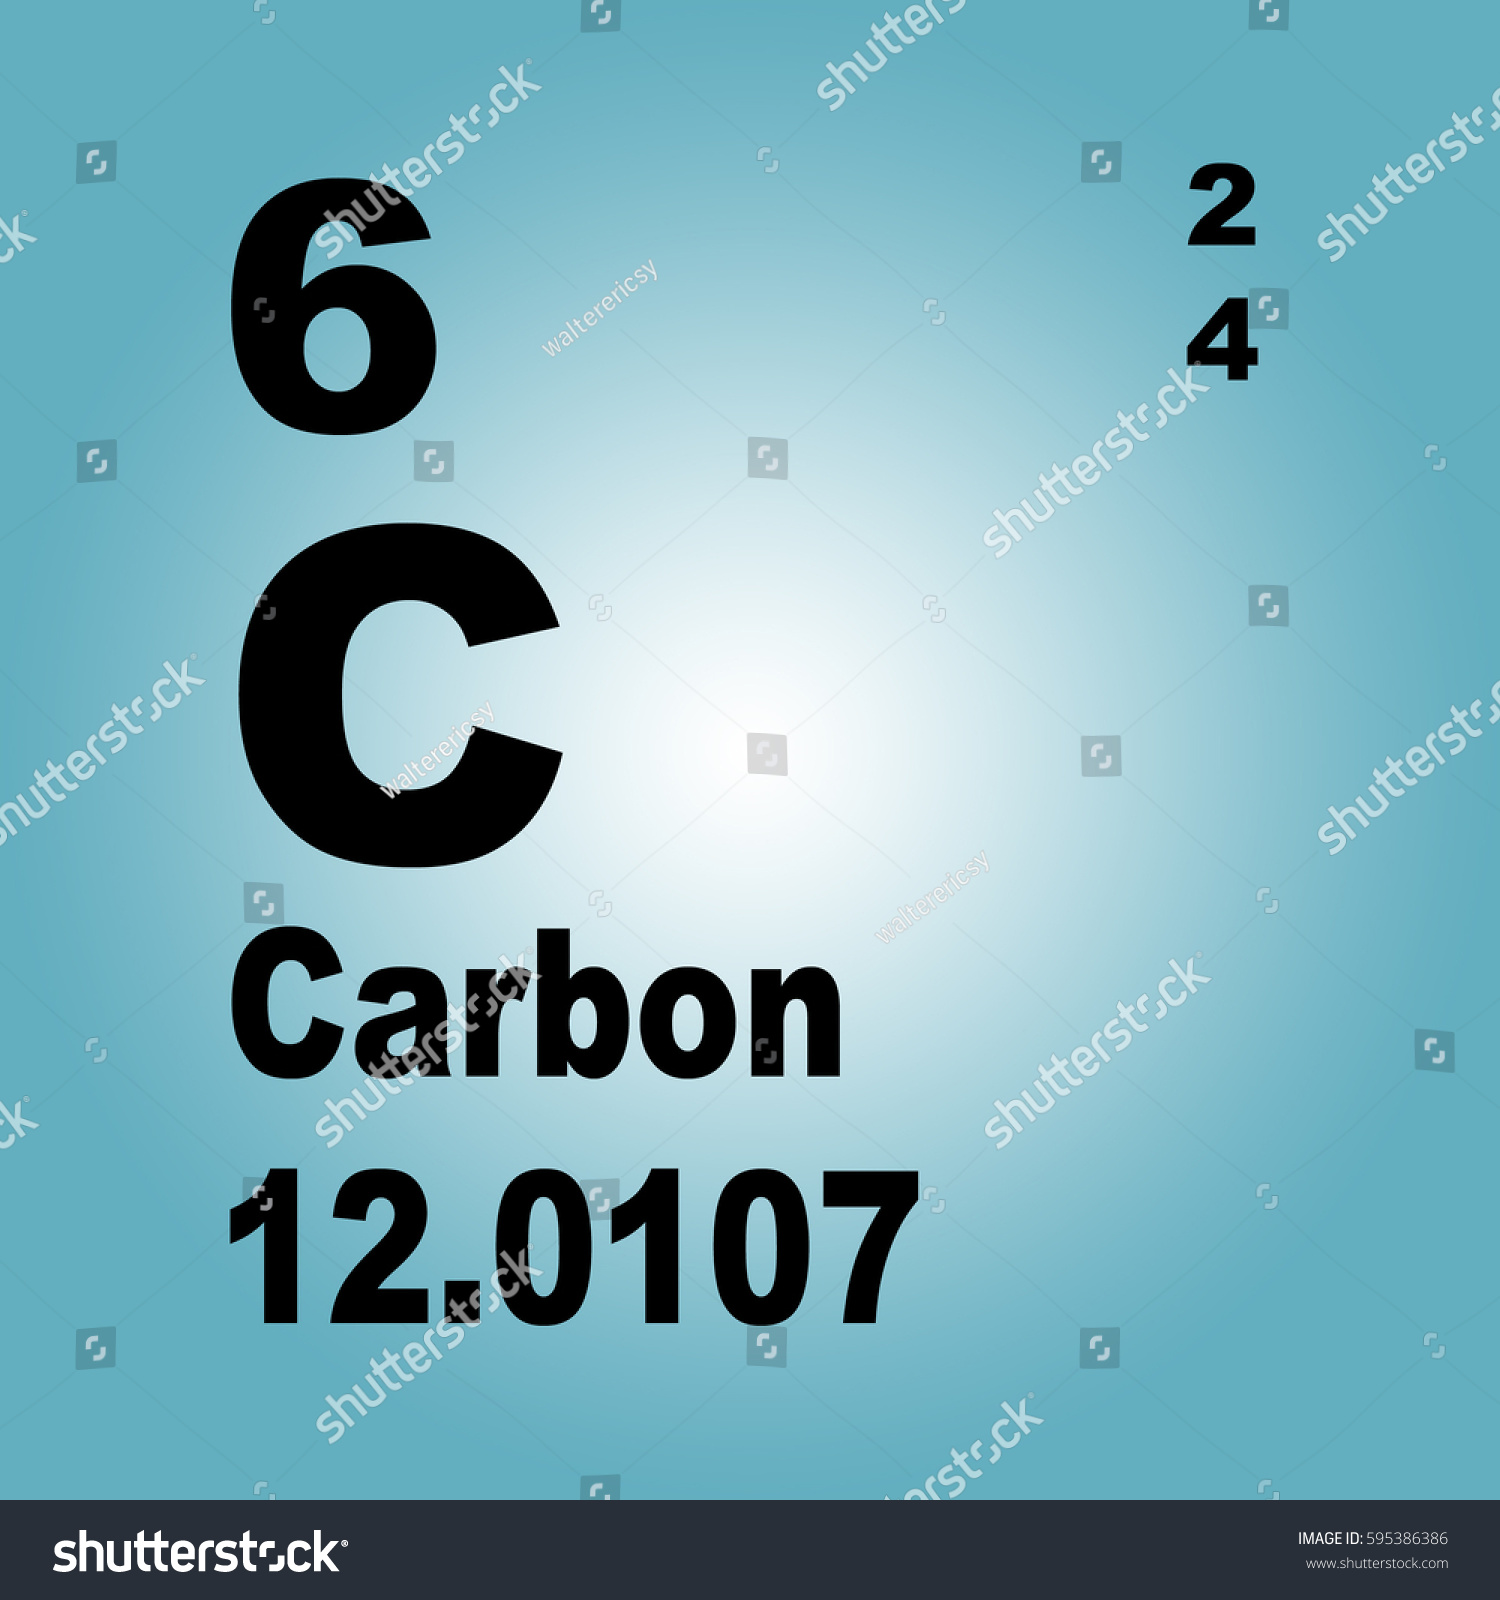 Carbon periodic table elements stock illustration 595386386 carbon periodic table of elements gamestrikefo Gallery